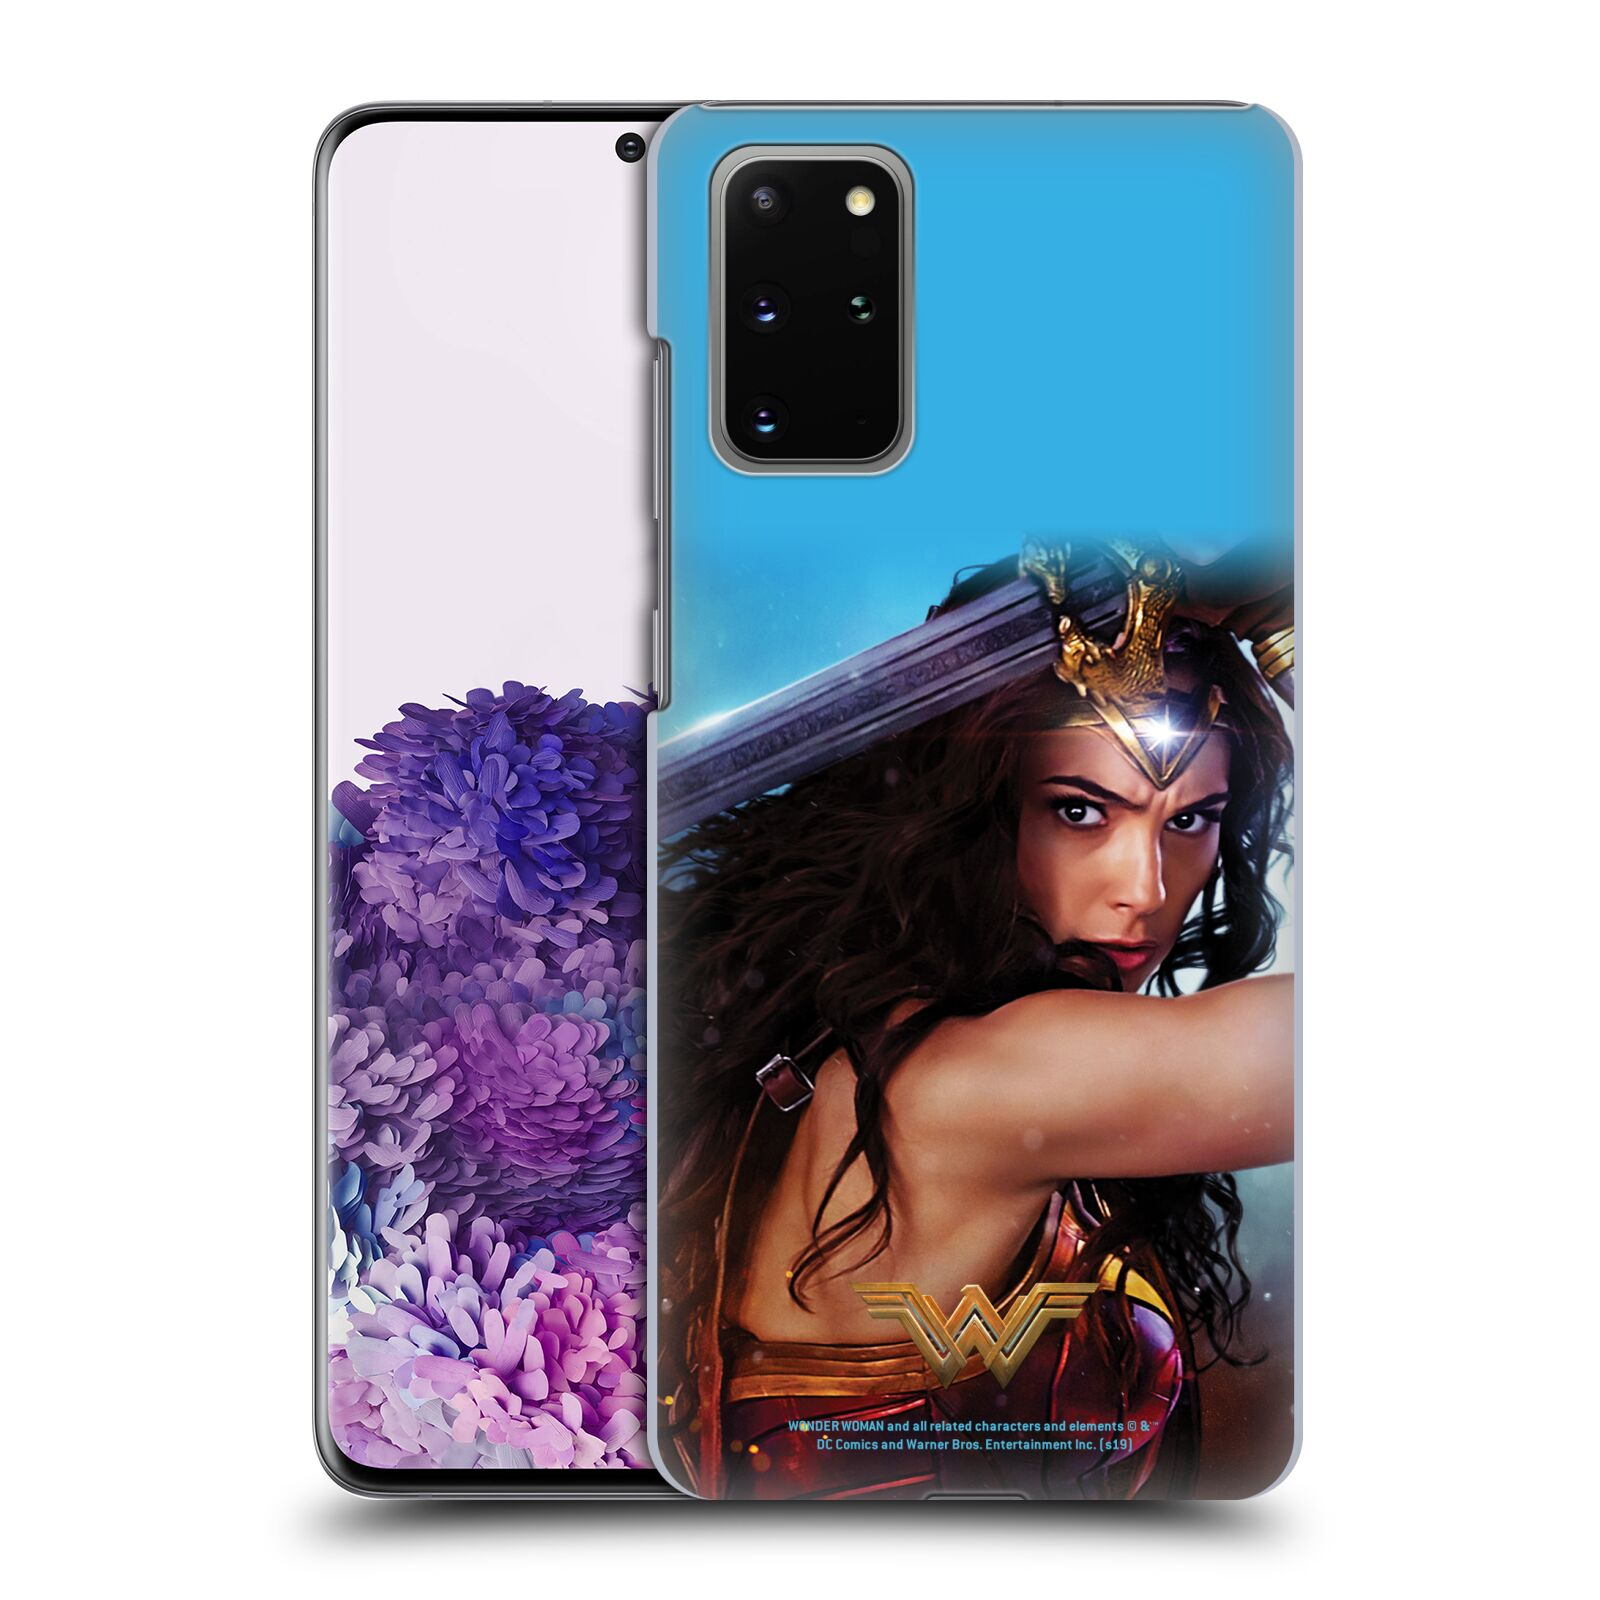 Official Wonder Woman Movie Posters Godkiller Sword 2 Case for Samsung Galaxy S20+ / S20+ 5G